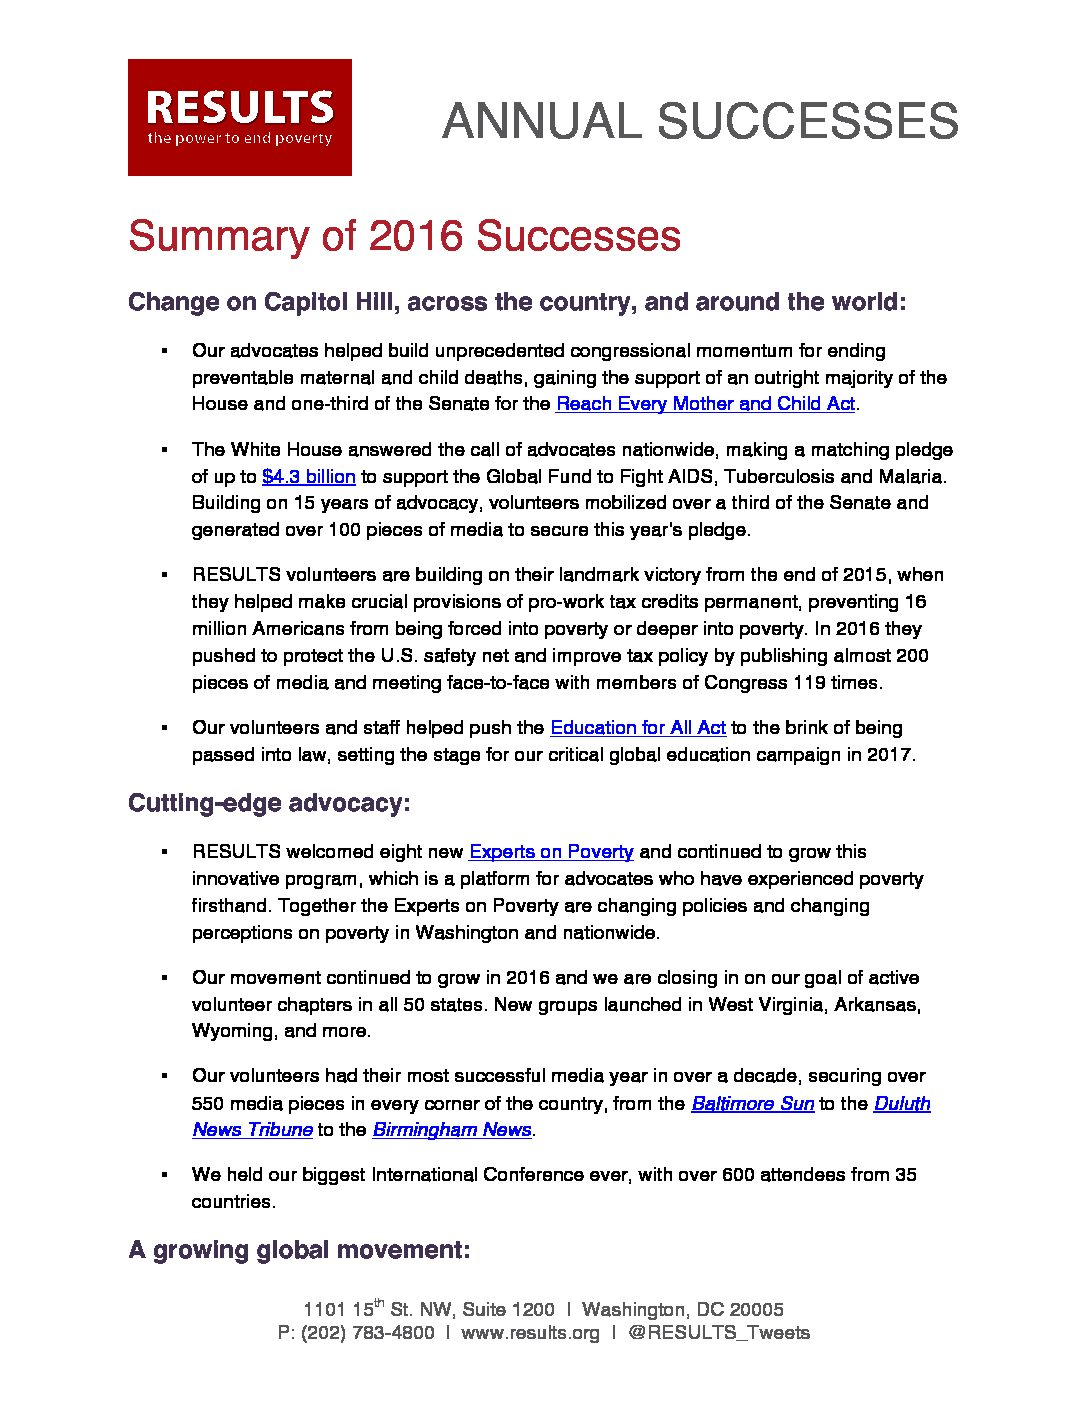 Annual Successes 2016